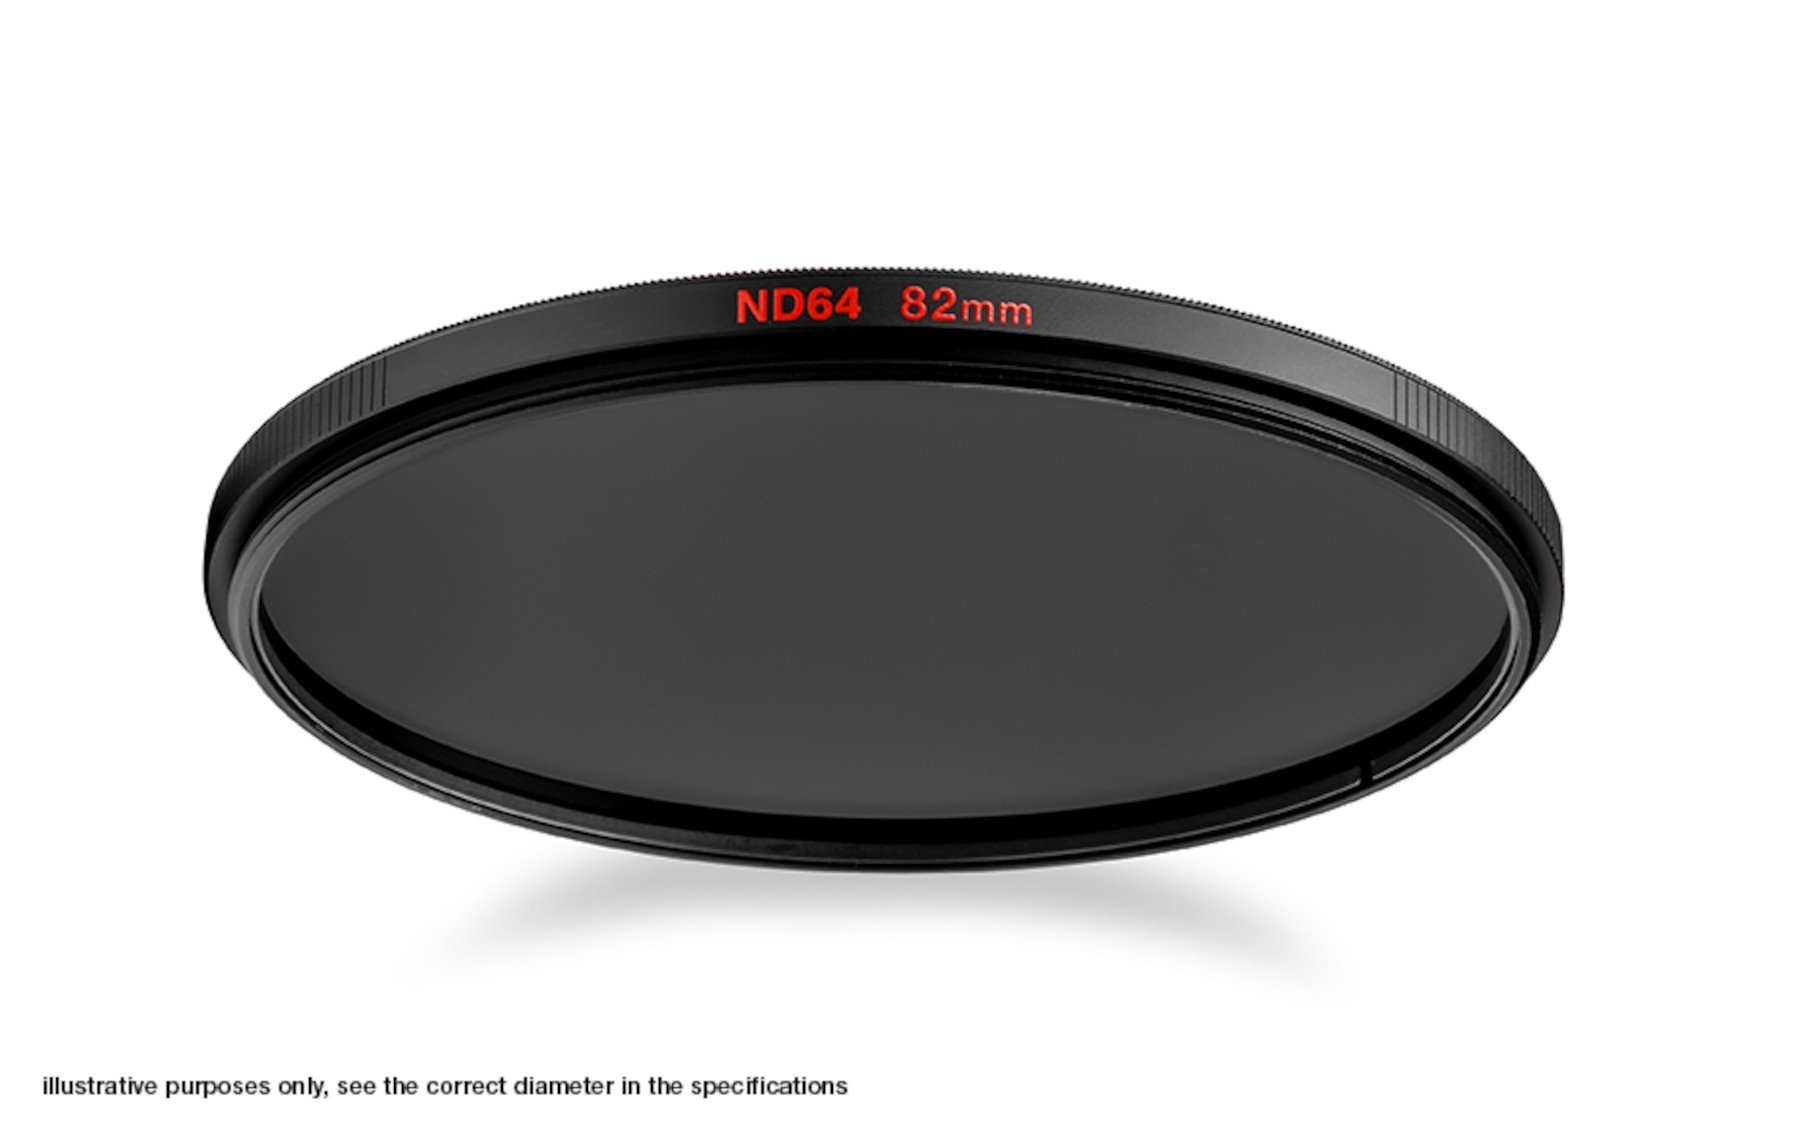 Manfrotto MFND64-82 82mm ND64 Filter MFND64-82